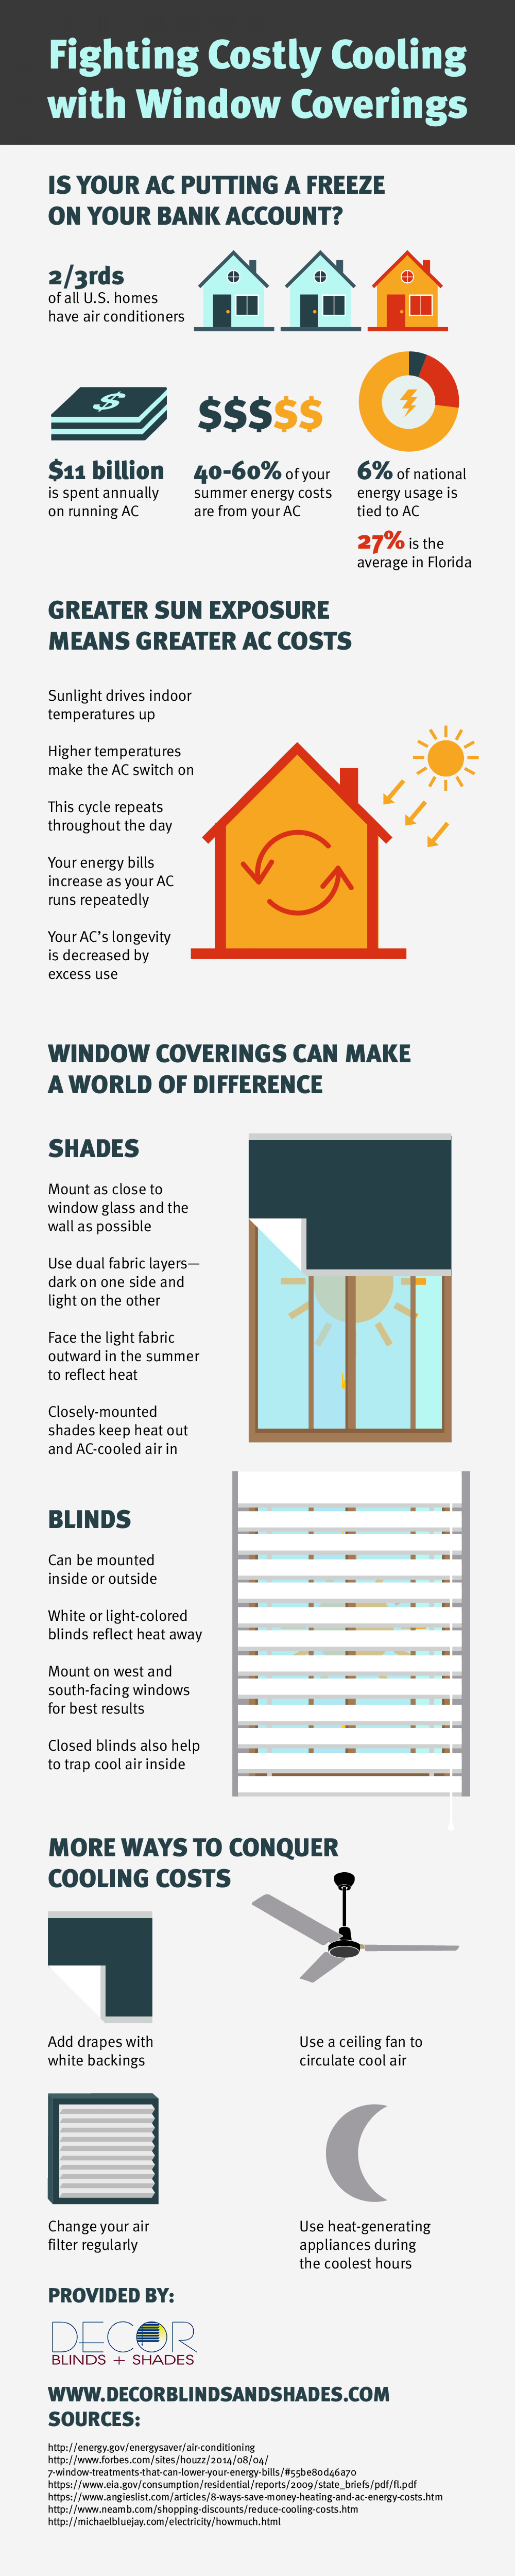 Fighting Costly Cooling with Window Coverings Infographic